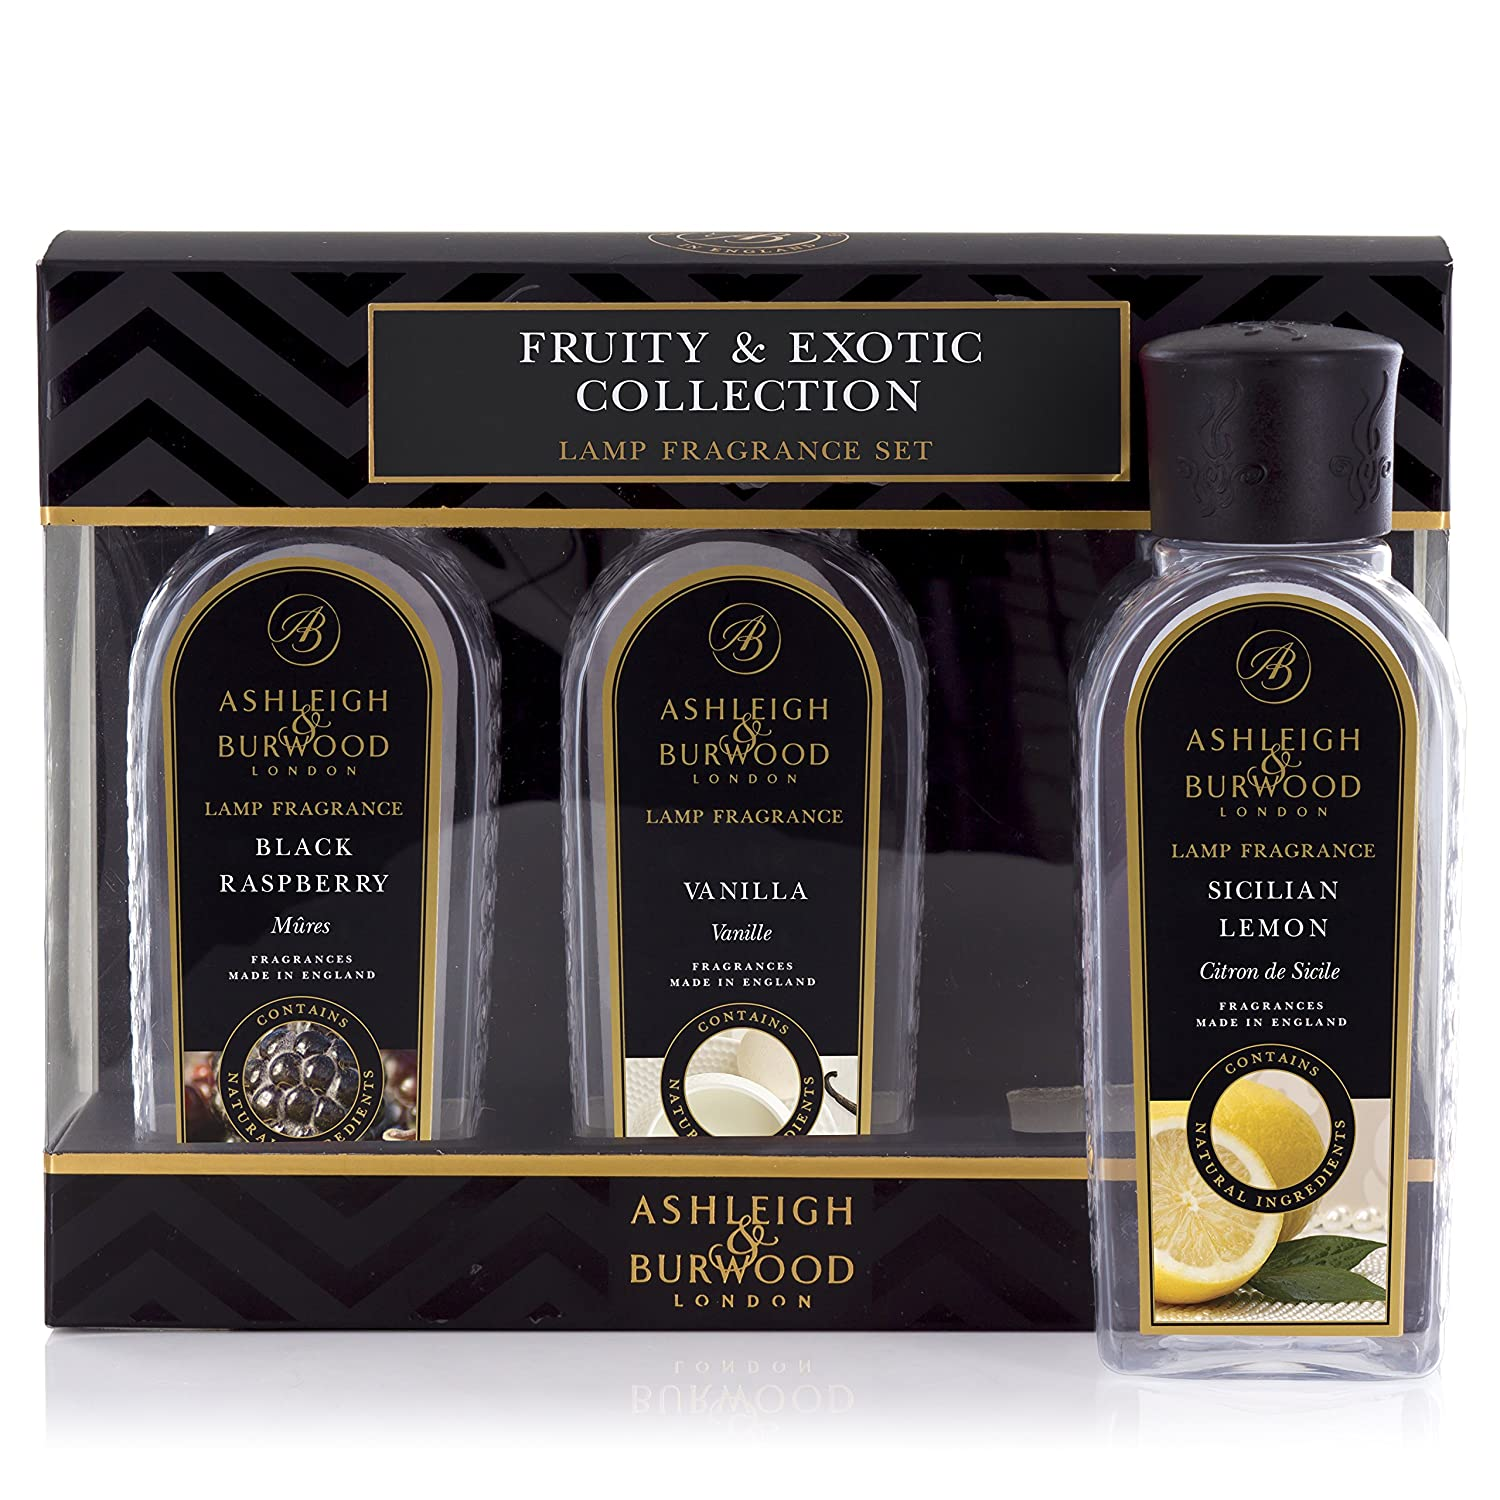 Ashleigh & Burwood Fragrance Lamp Fragrances 3 x 180ml - Fruity & Exotic Collection Scented Candle Shop PFLS1042